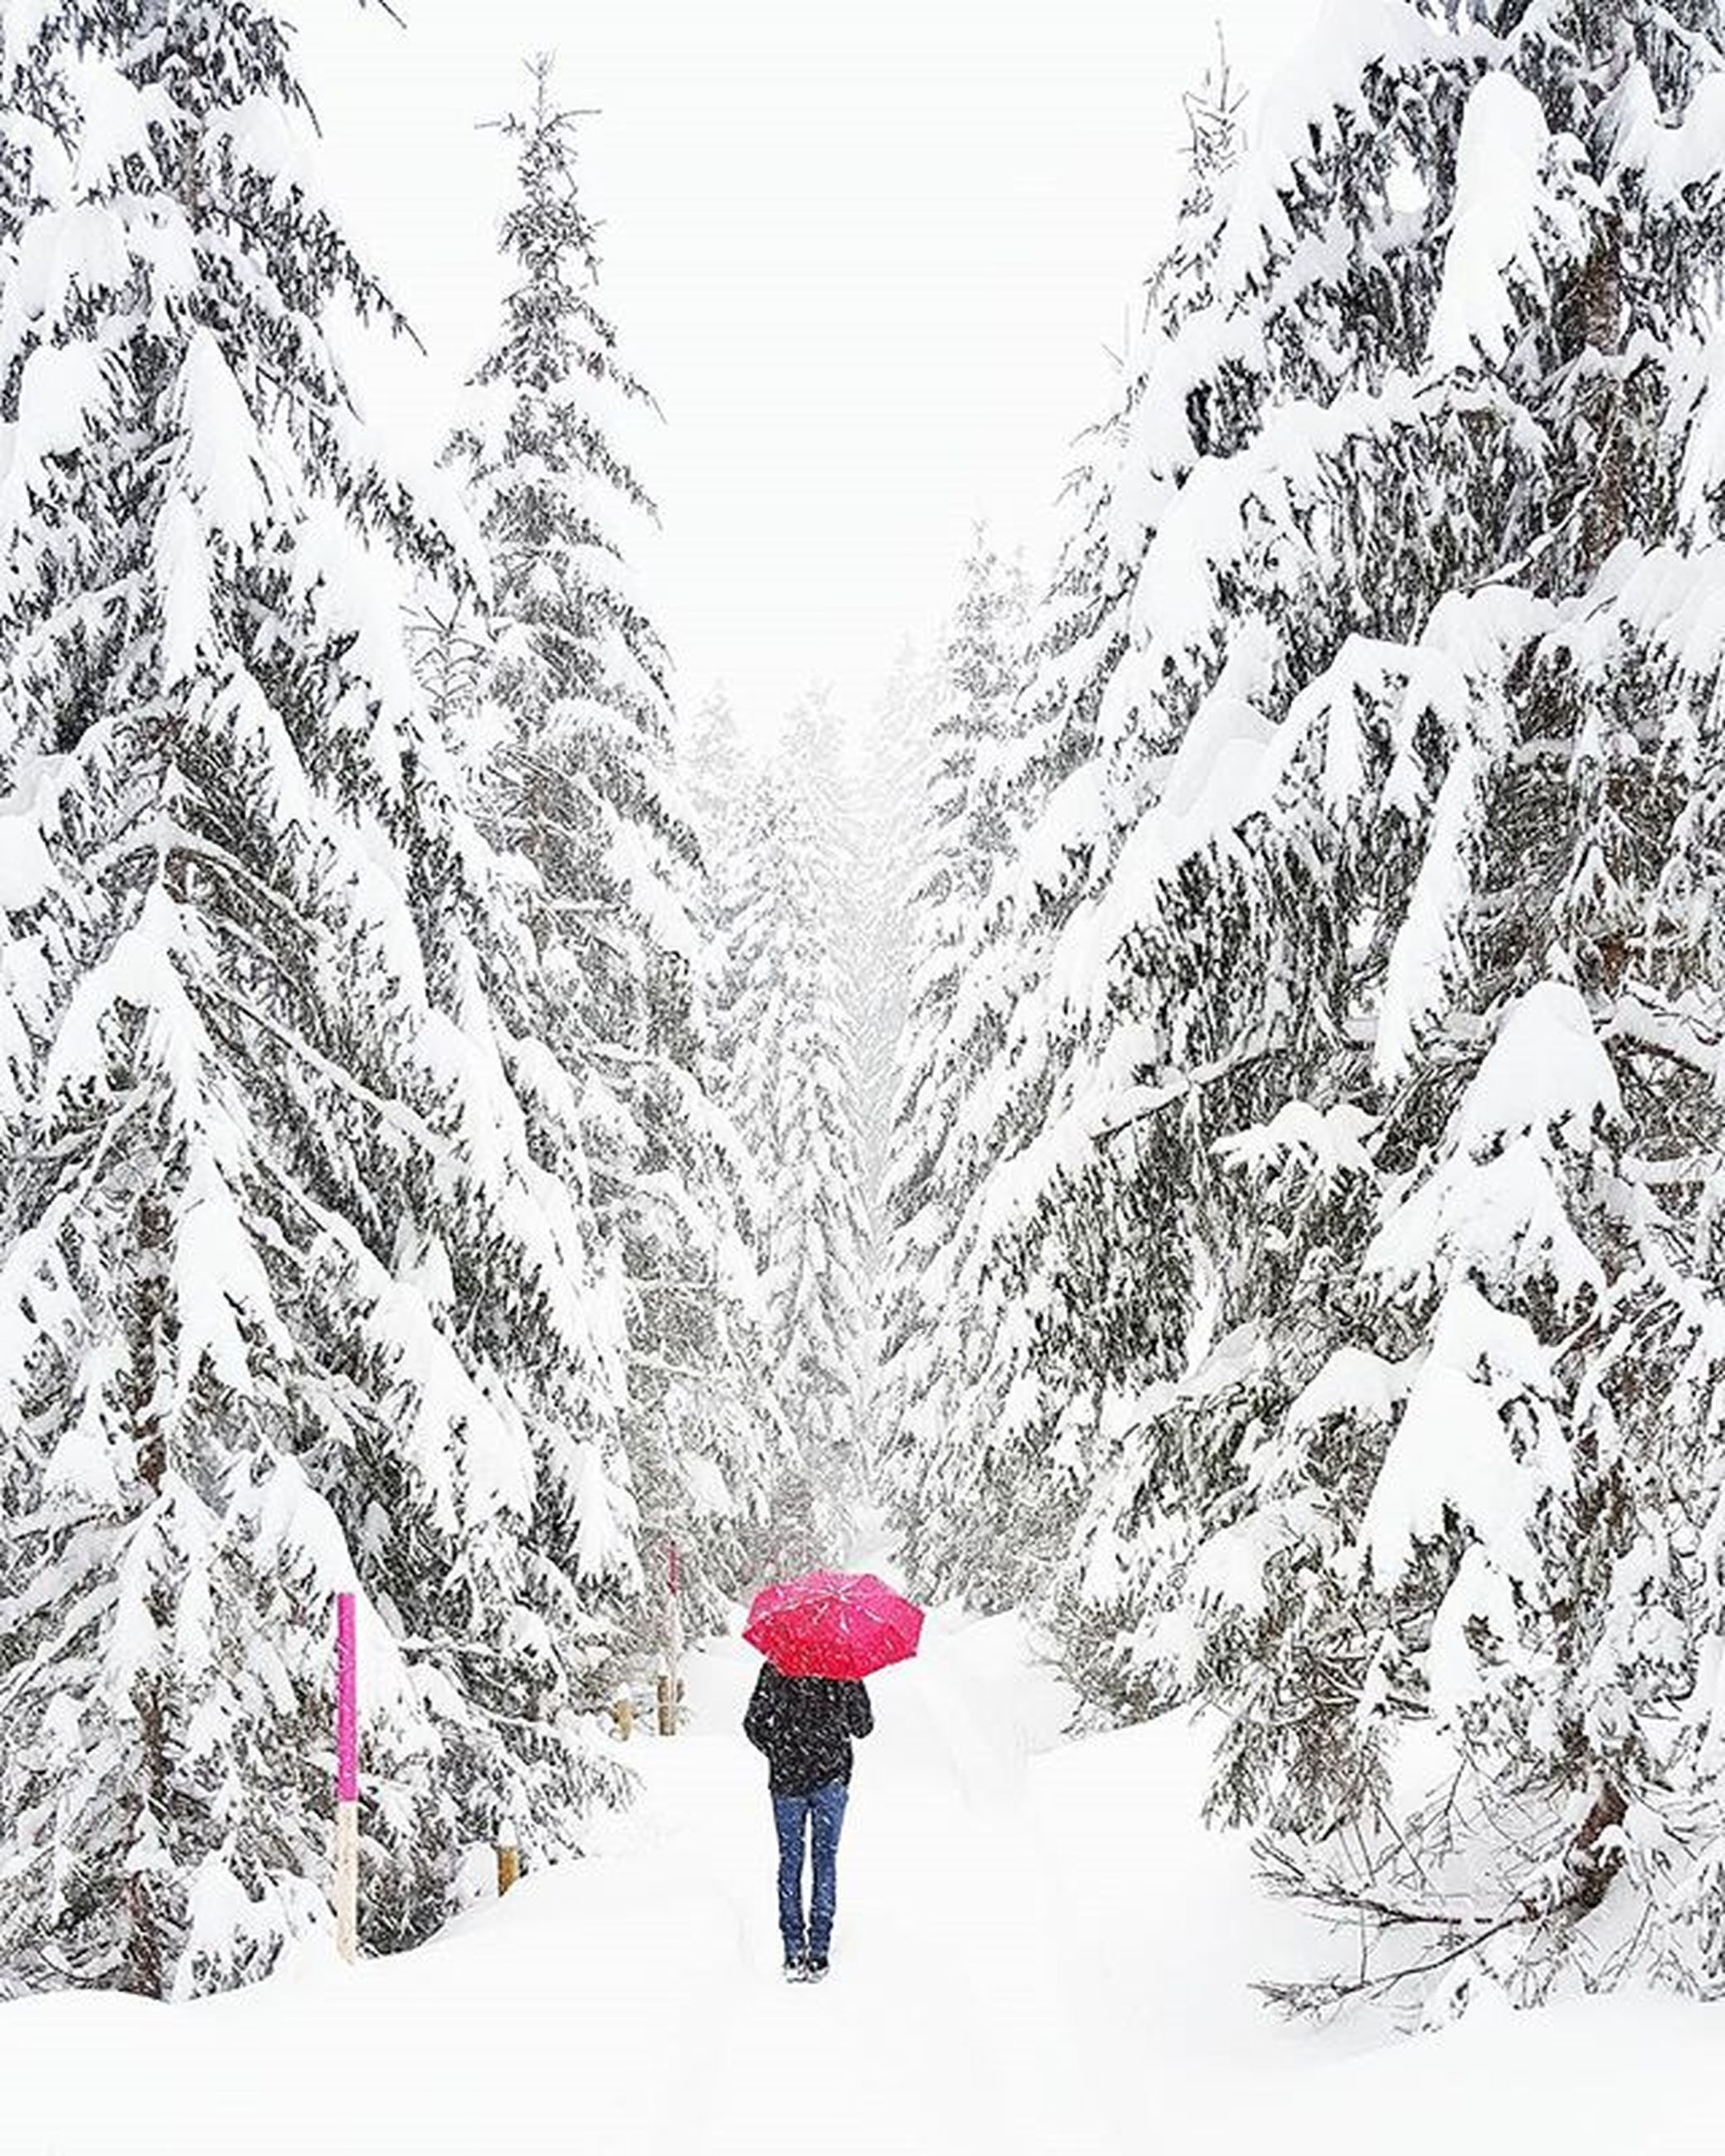 winter, snow, lifestyles, cold temperature, leisure activity, rear view, season, full length, tree, walking, weather, men, person, warm clothing, standing, nature, covering, unrecognizable person